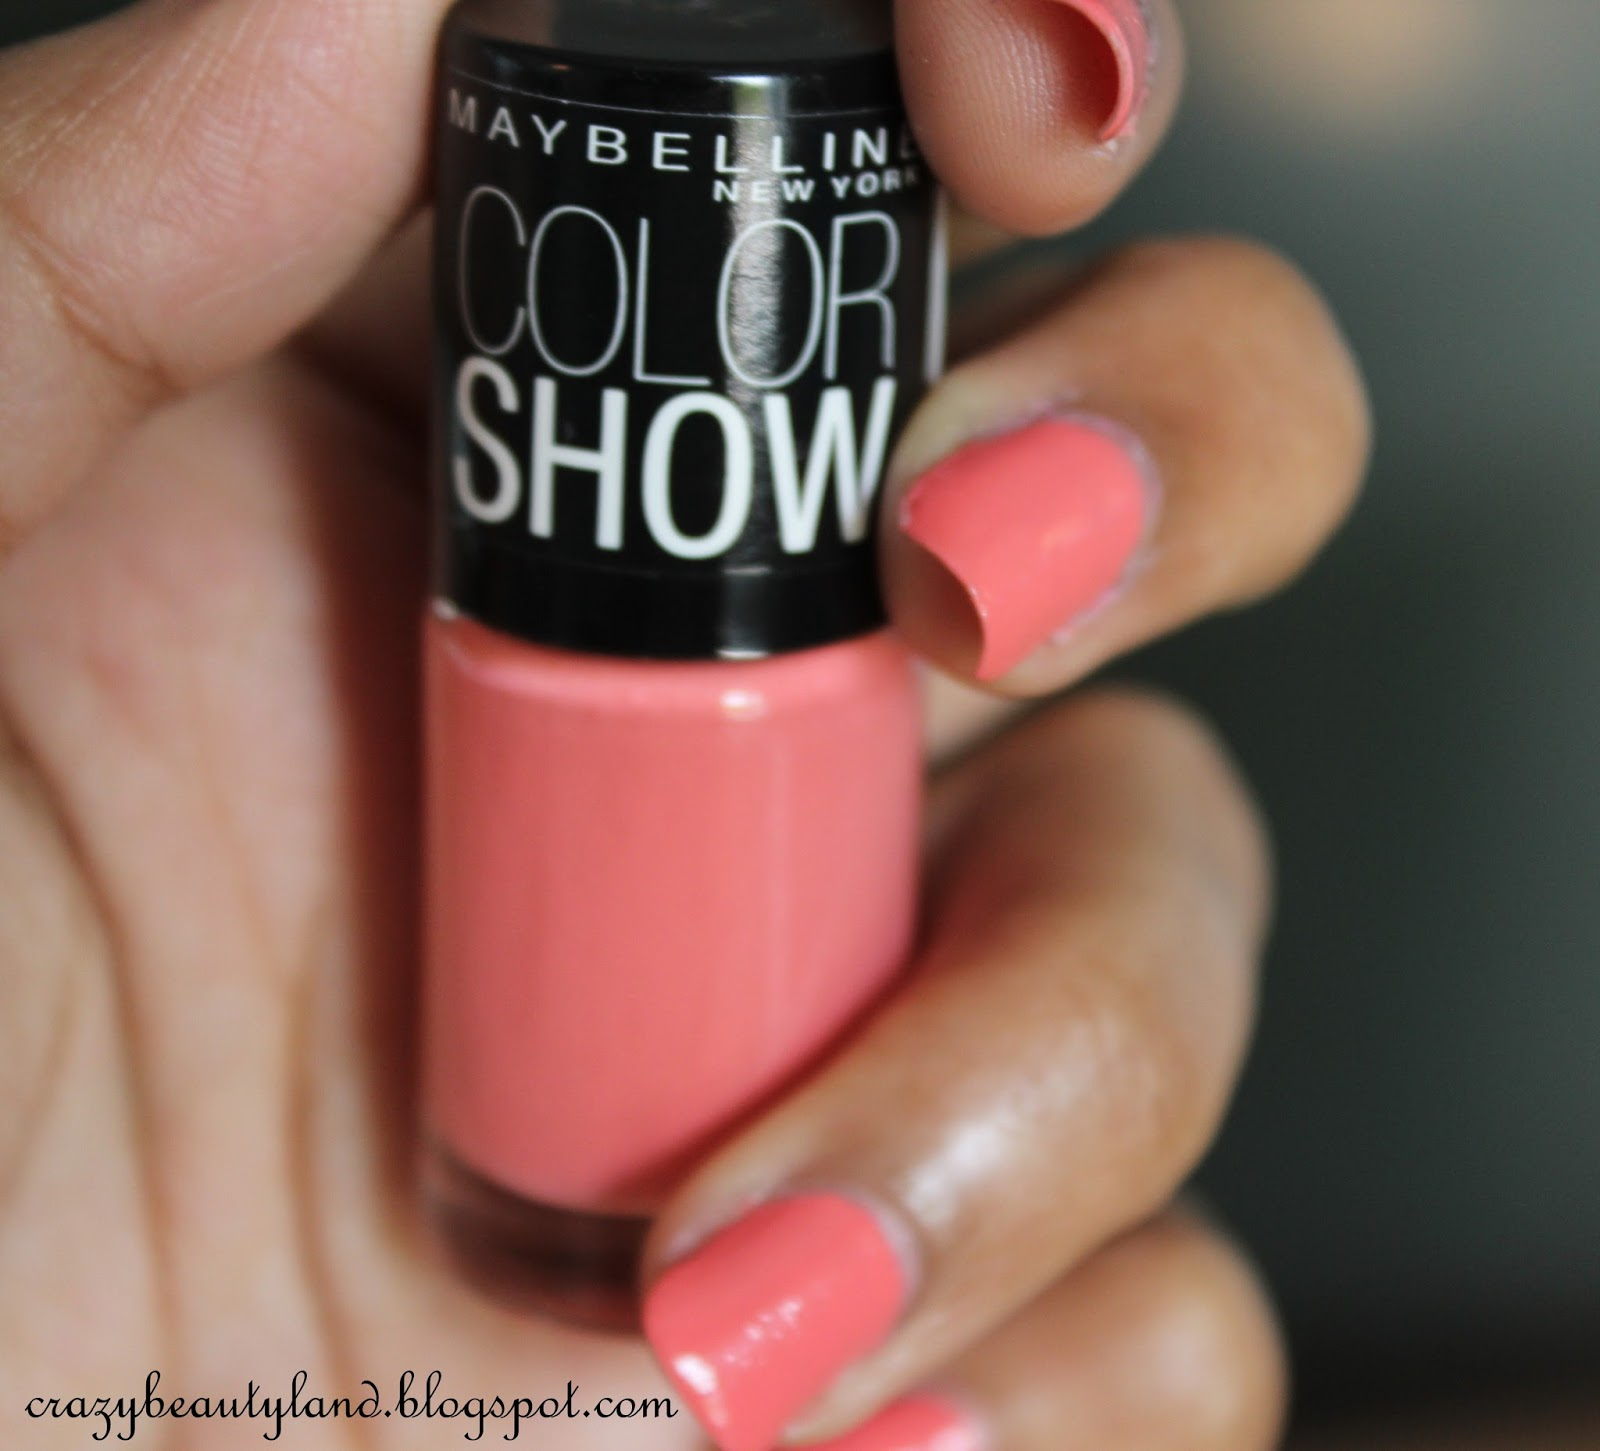 8bea8b94d My Experience with Maybelline Color Show Nail Polish in Coral Craze